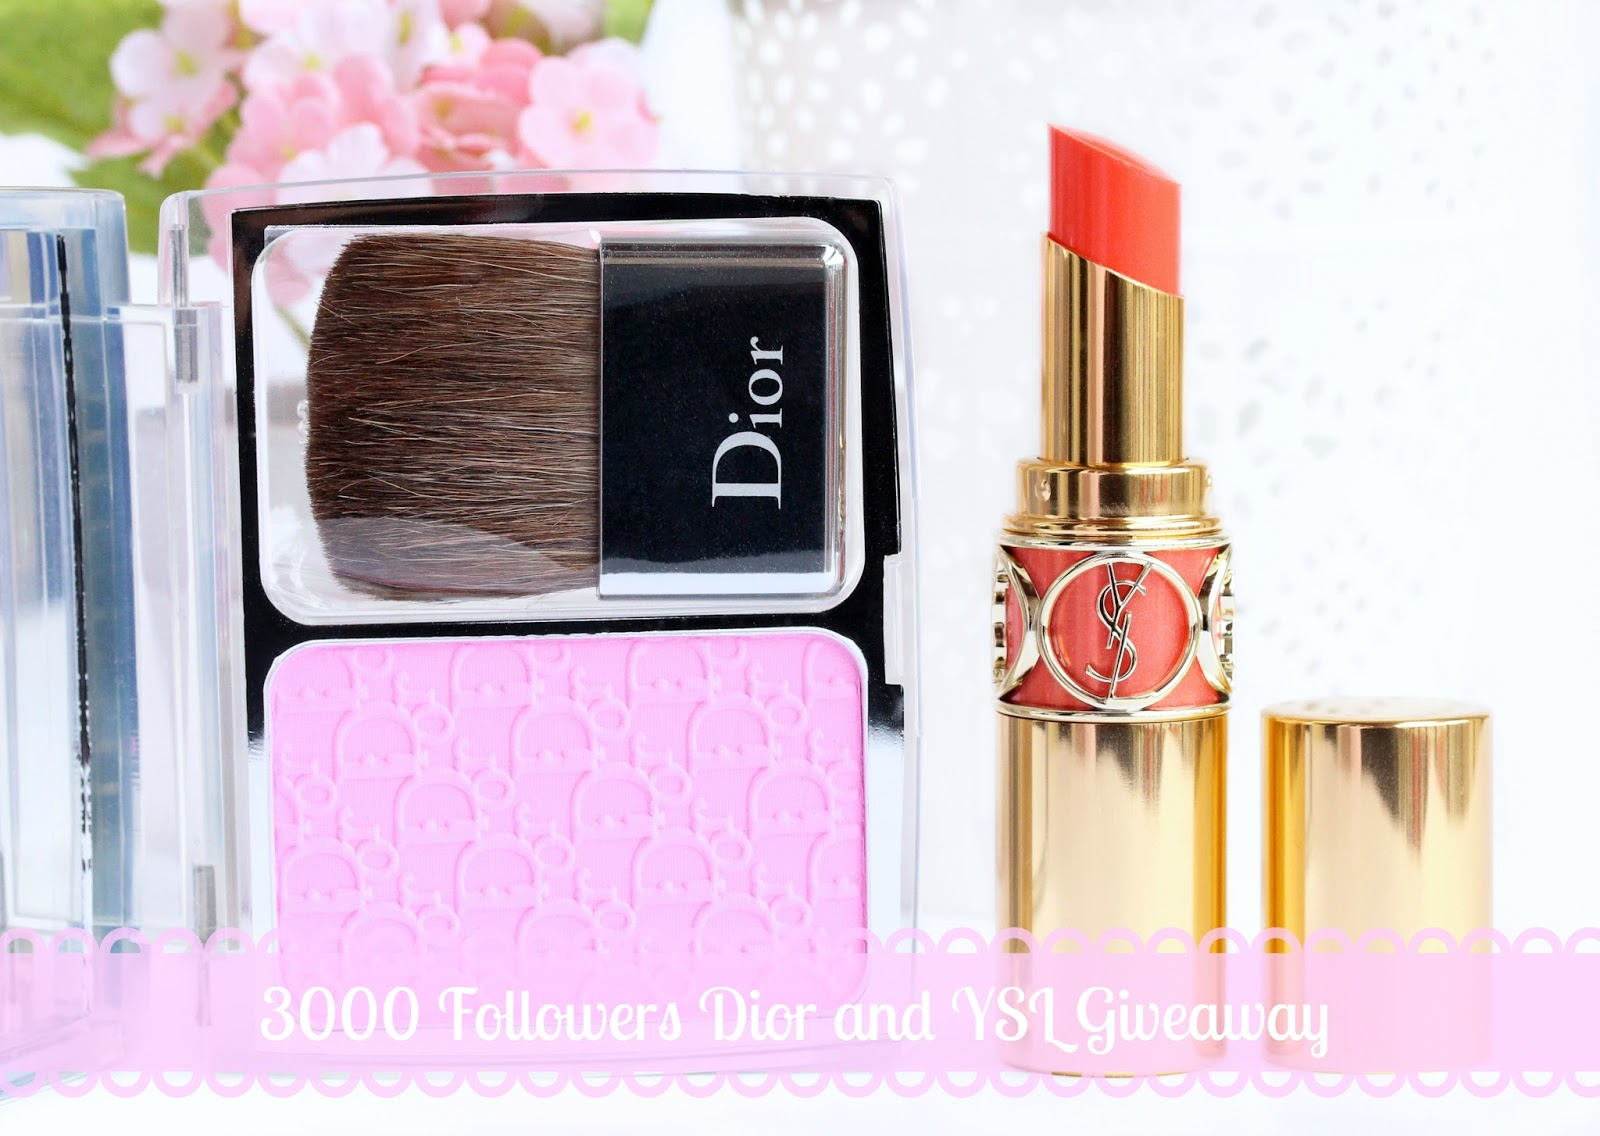 Dior and YSL giveaway